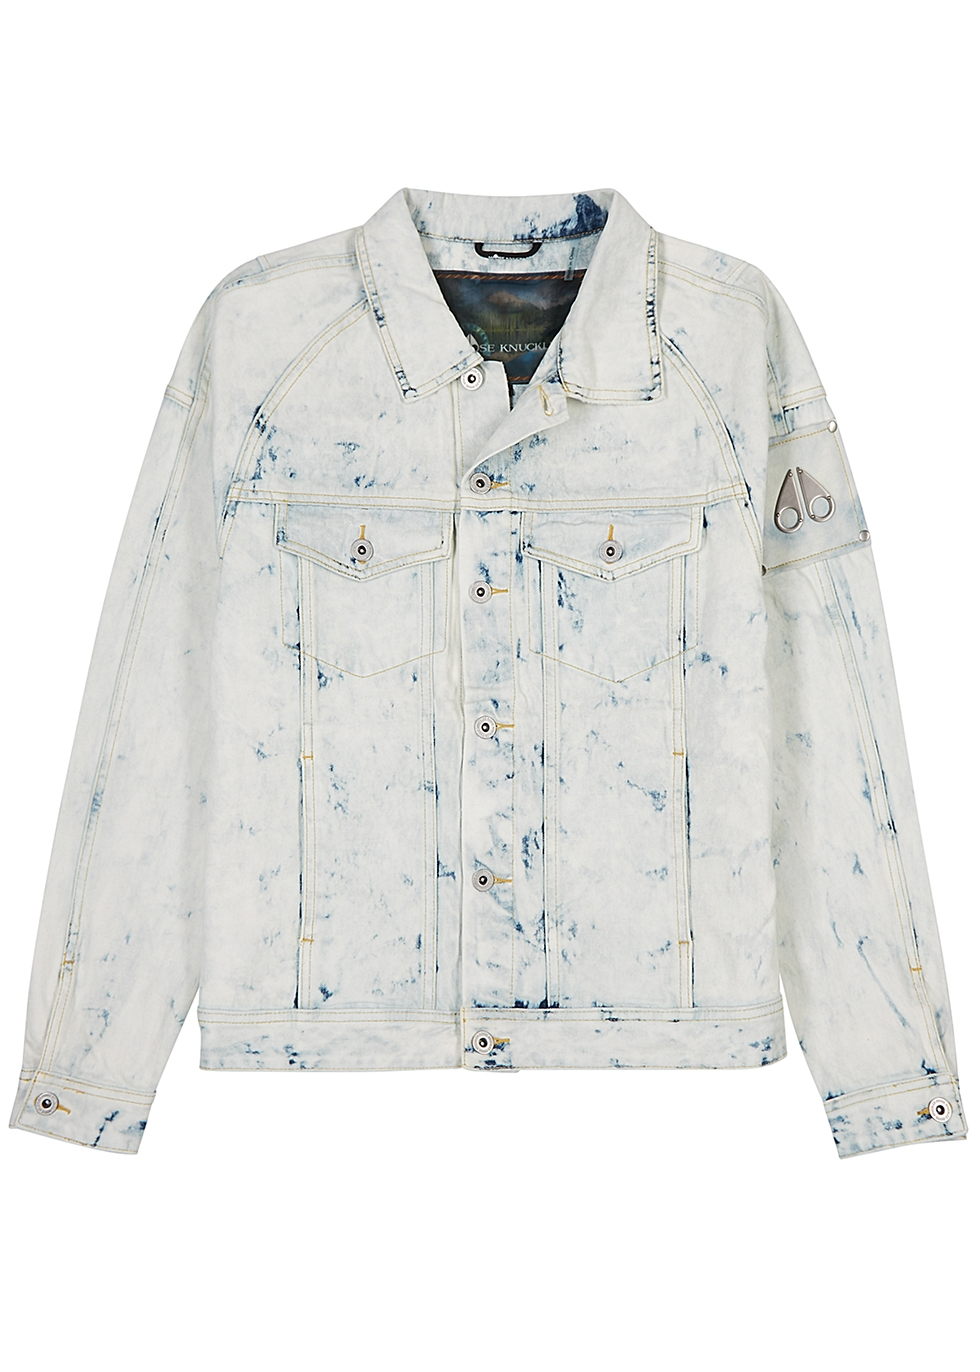 Scarboro bleached denim jacket